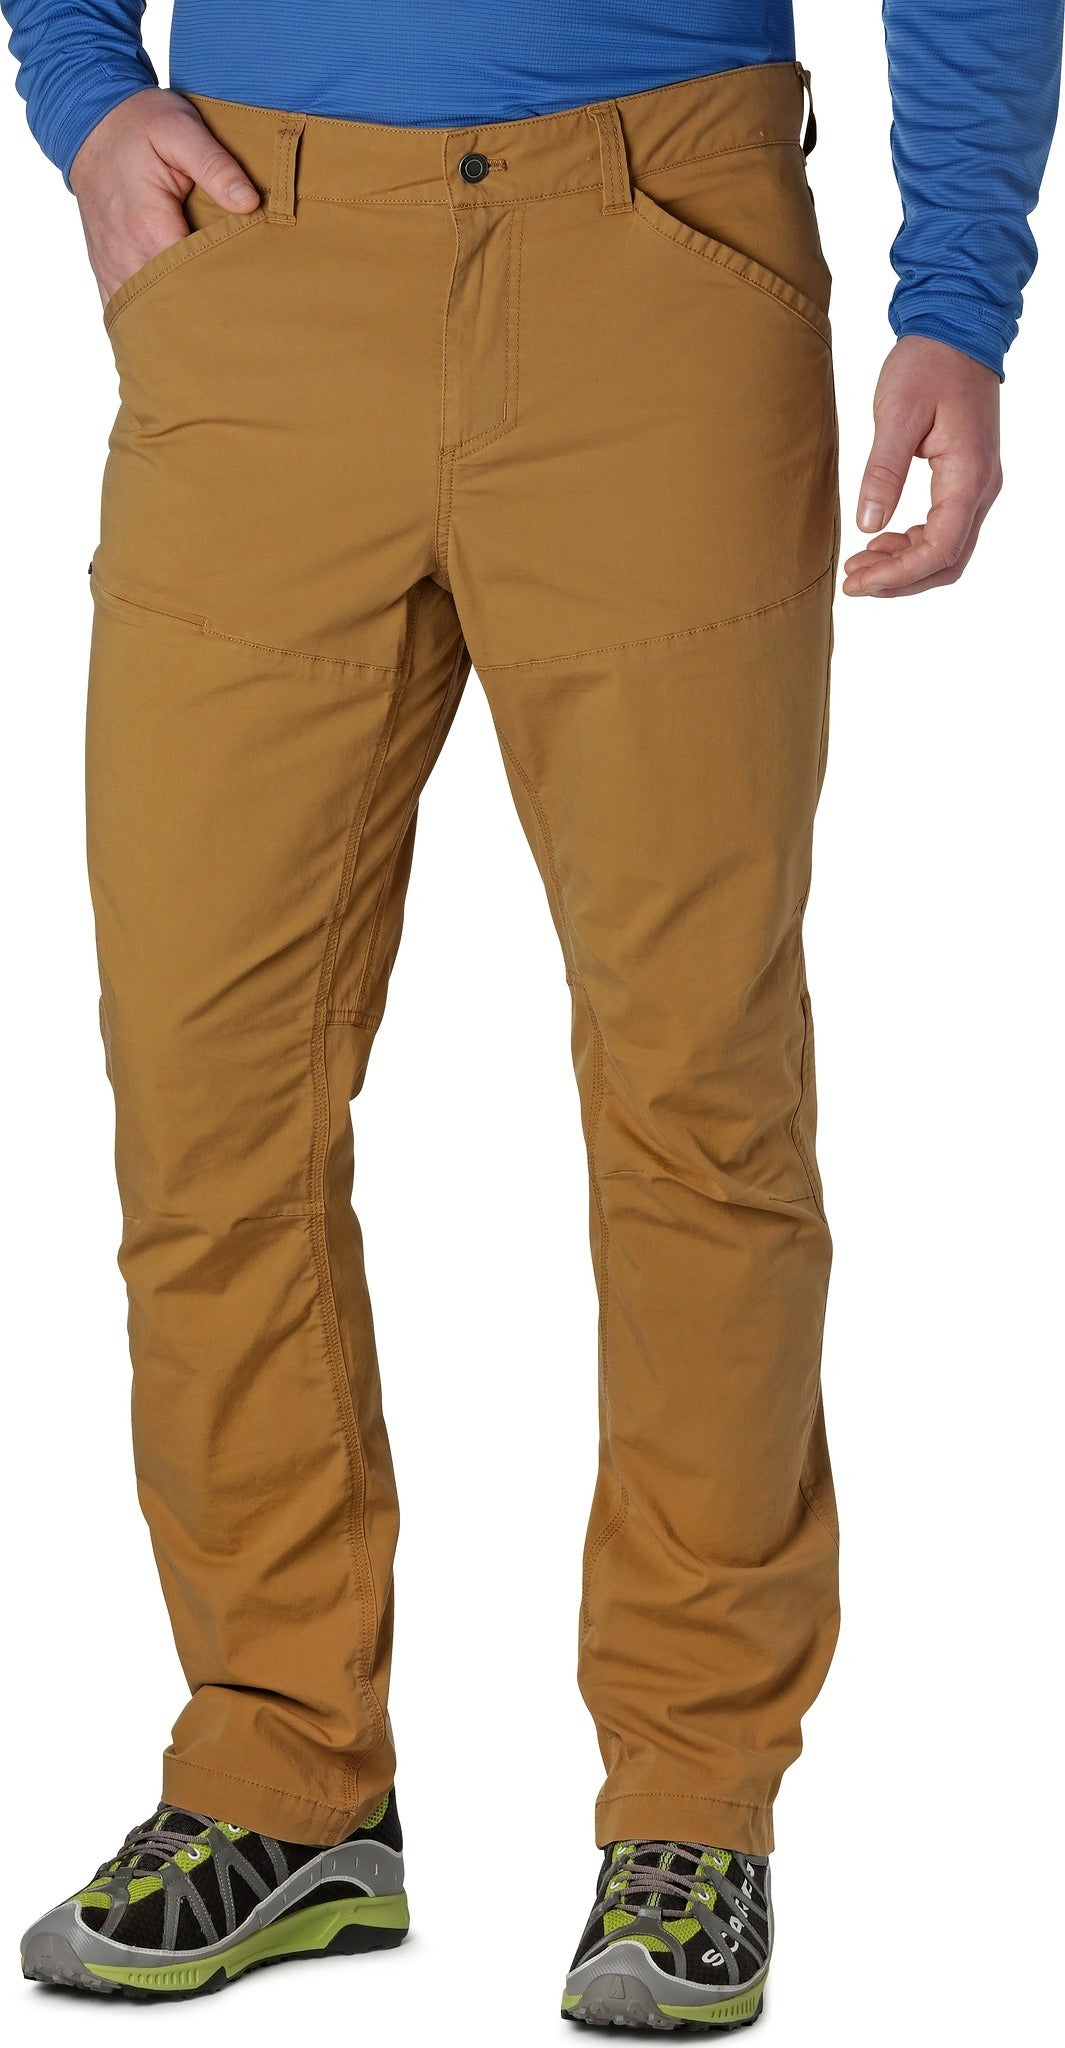 803553f3a6a680 Outdoor Research Wadi Rum Pants - 32 Inch Inseam - Men's   Altitude ...